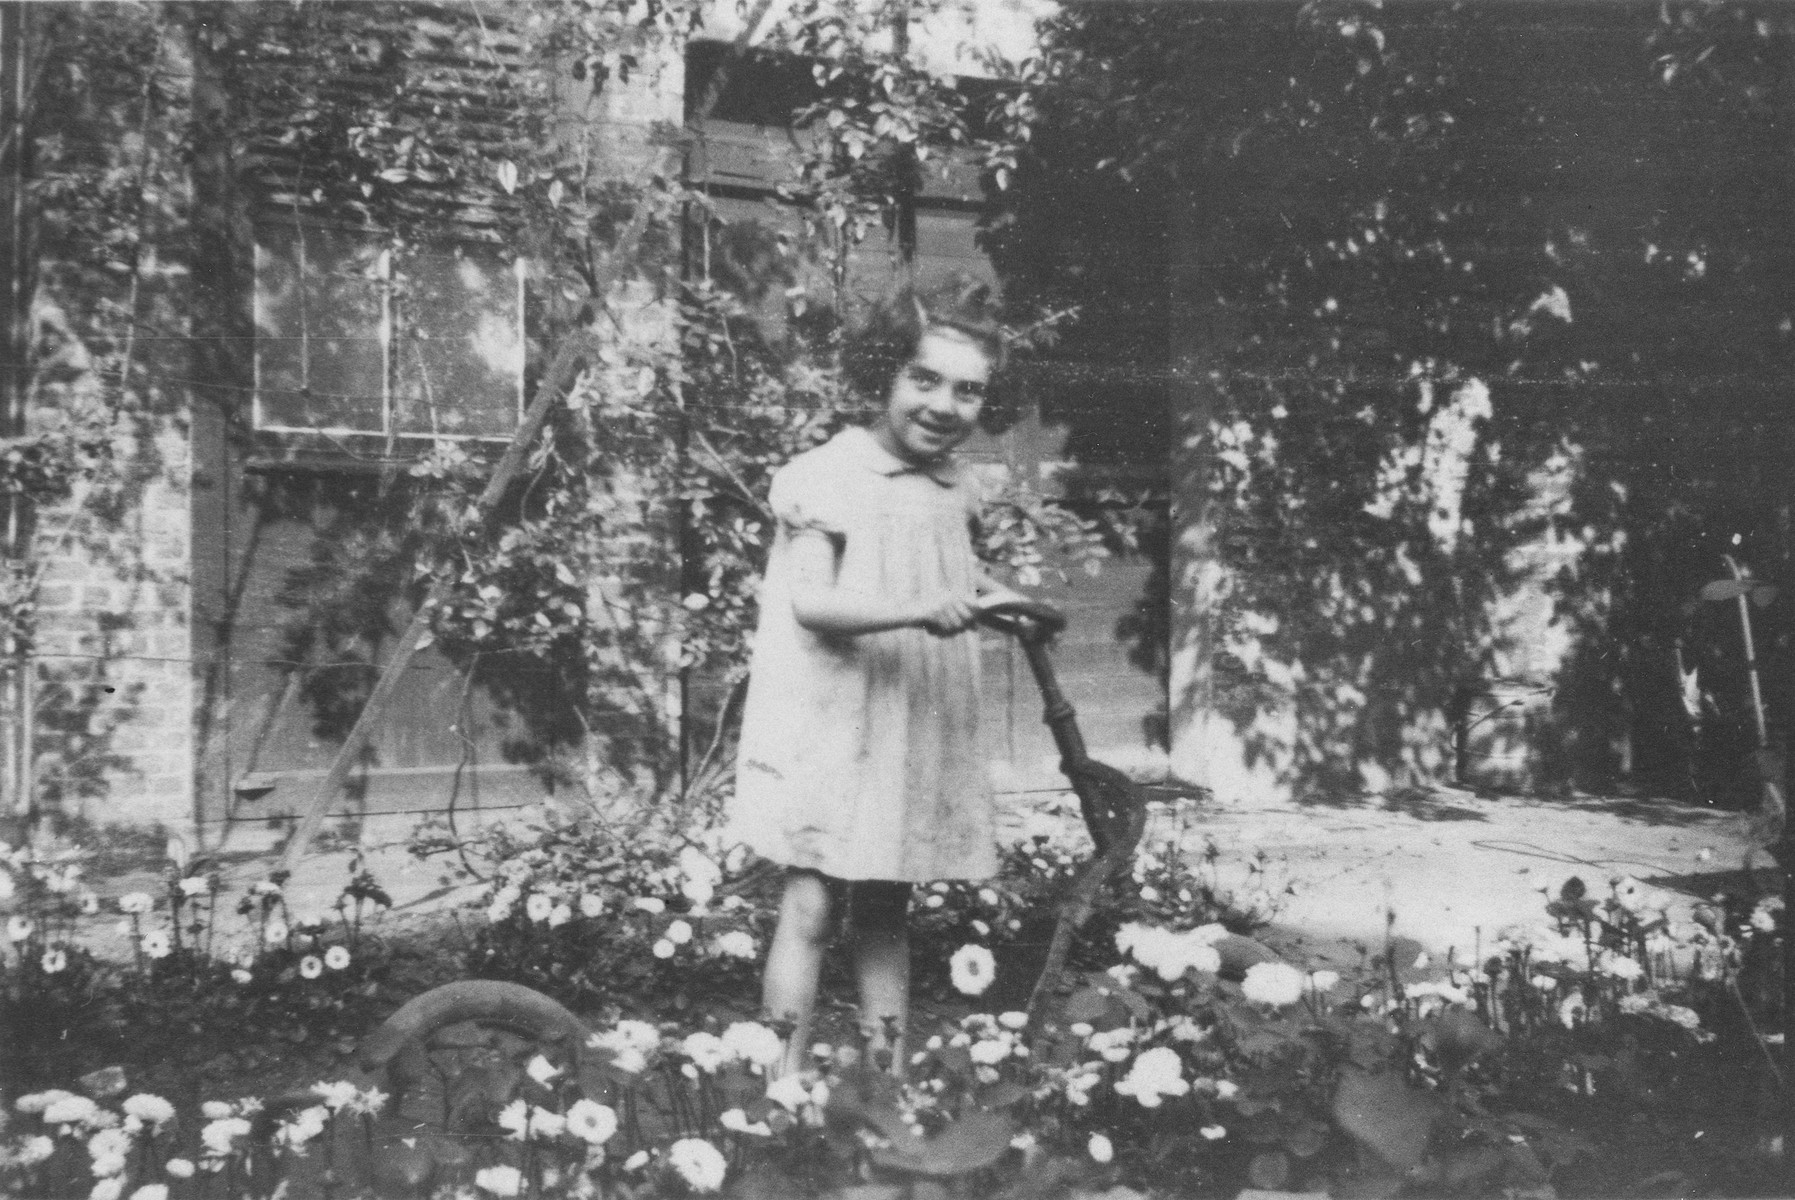 Rachelle Silberman, a Jewish child from Brussels who is living in hiding, poses in the garden of the Couvent des Soeurs Franciscaines [Convent of the Franciscan Sisters] in Brouges on her fifth birthday.